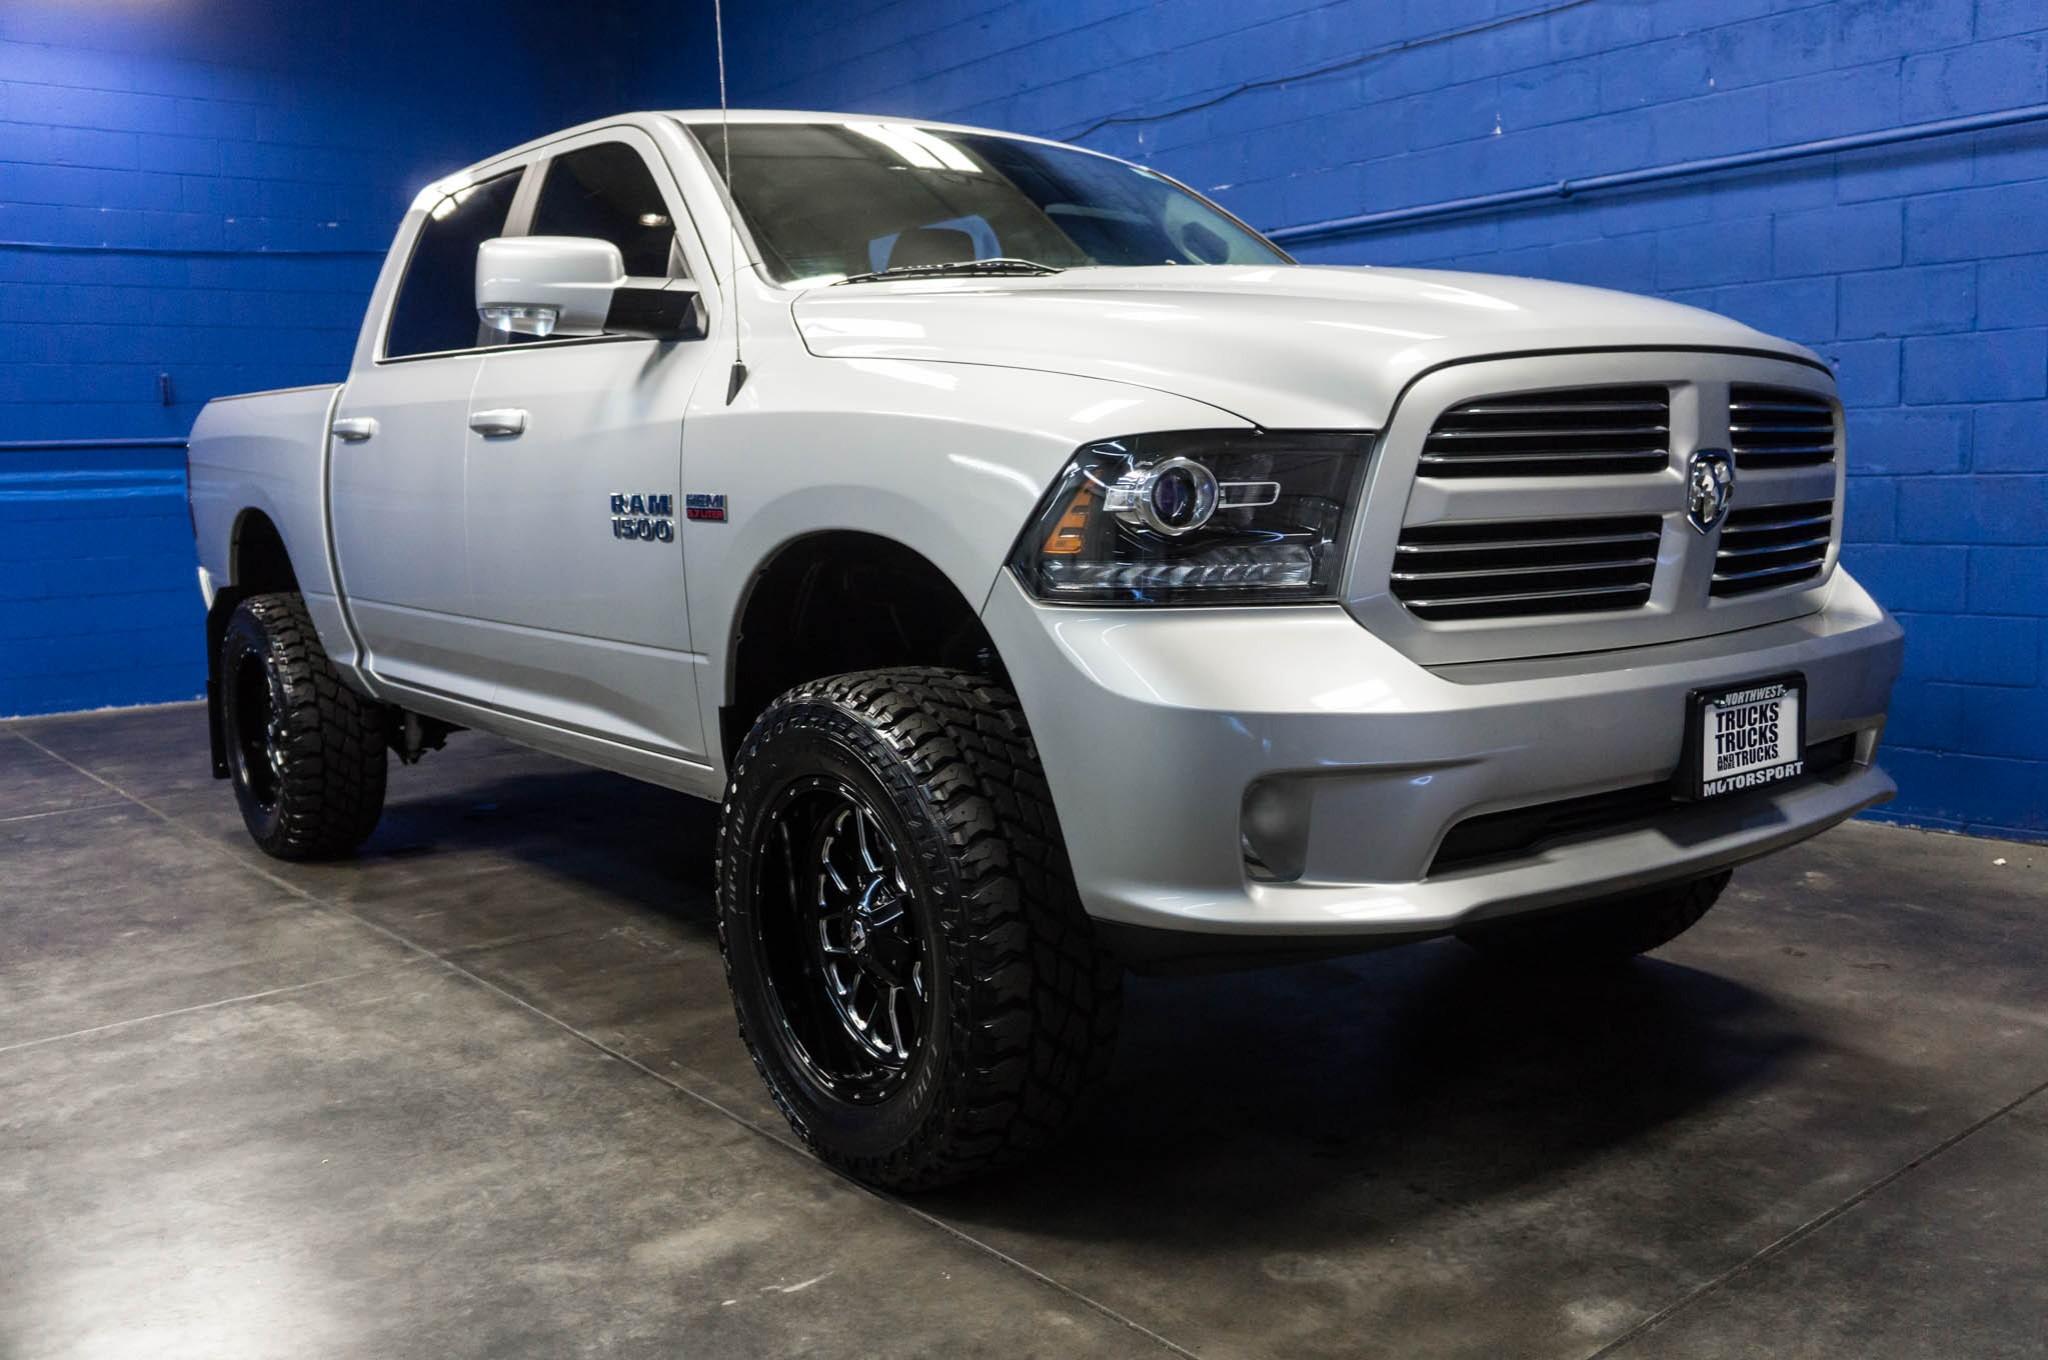 used lifted 2016 dodge ram 1500 sport 4x4 truck for sale 35016. Black Bedroom Furniture Sets. Home Design Ideas